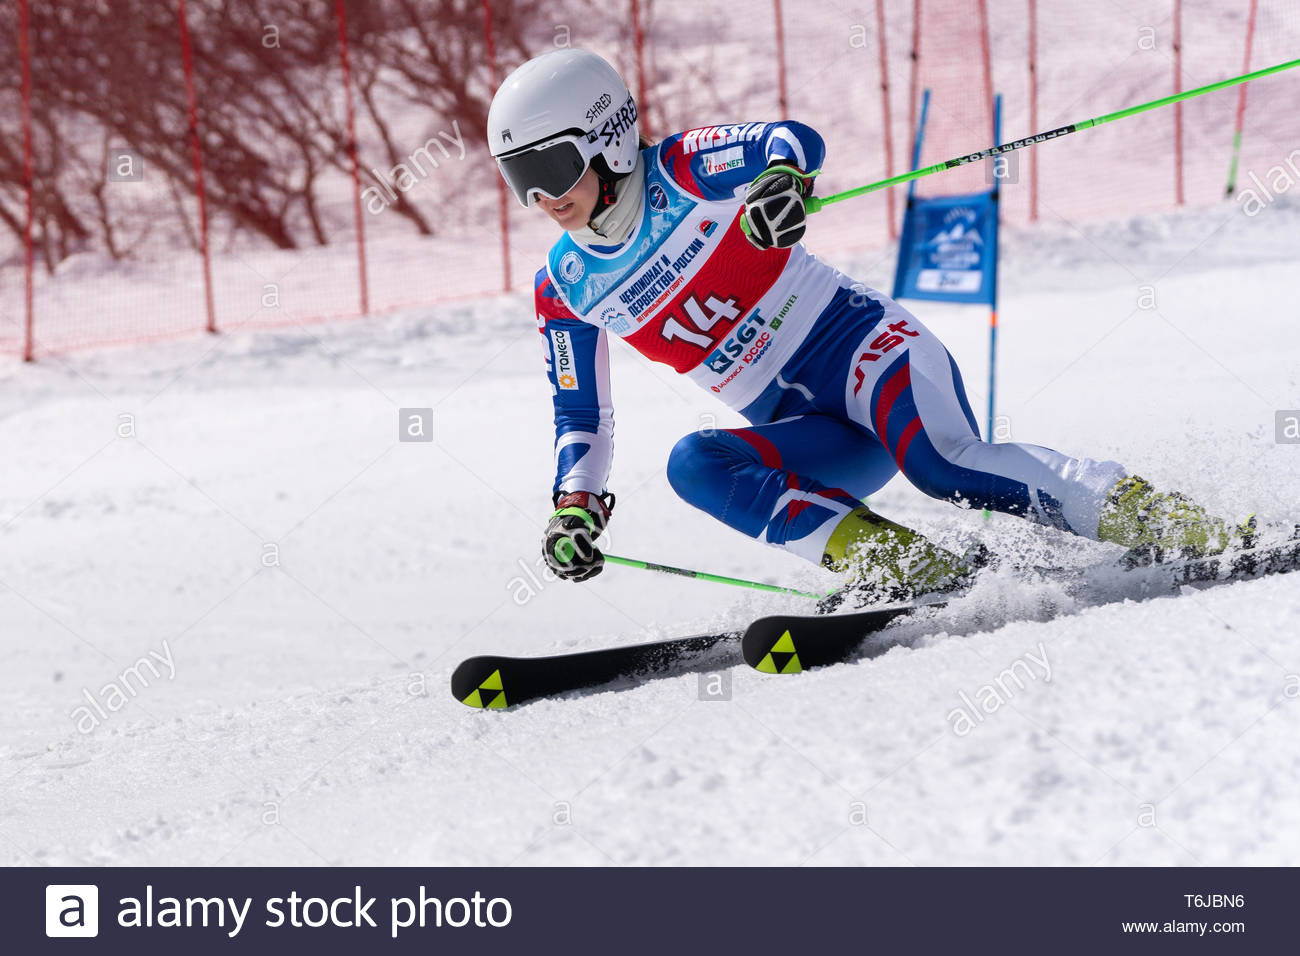 KAMCHATKA PENINSULA, RUSSIAN FEDERATION - APRIL 1, 2019: Russian Women's Alpine Skiing Championship, giant slalom. Mountain skier Shustrova Darya (St. - Stock Image